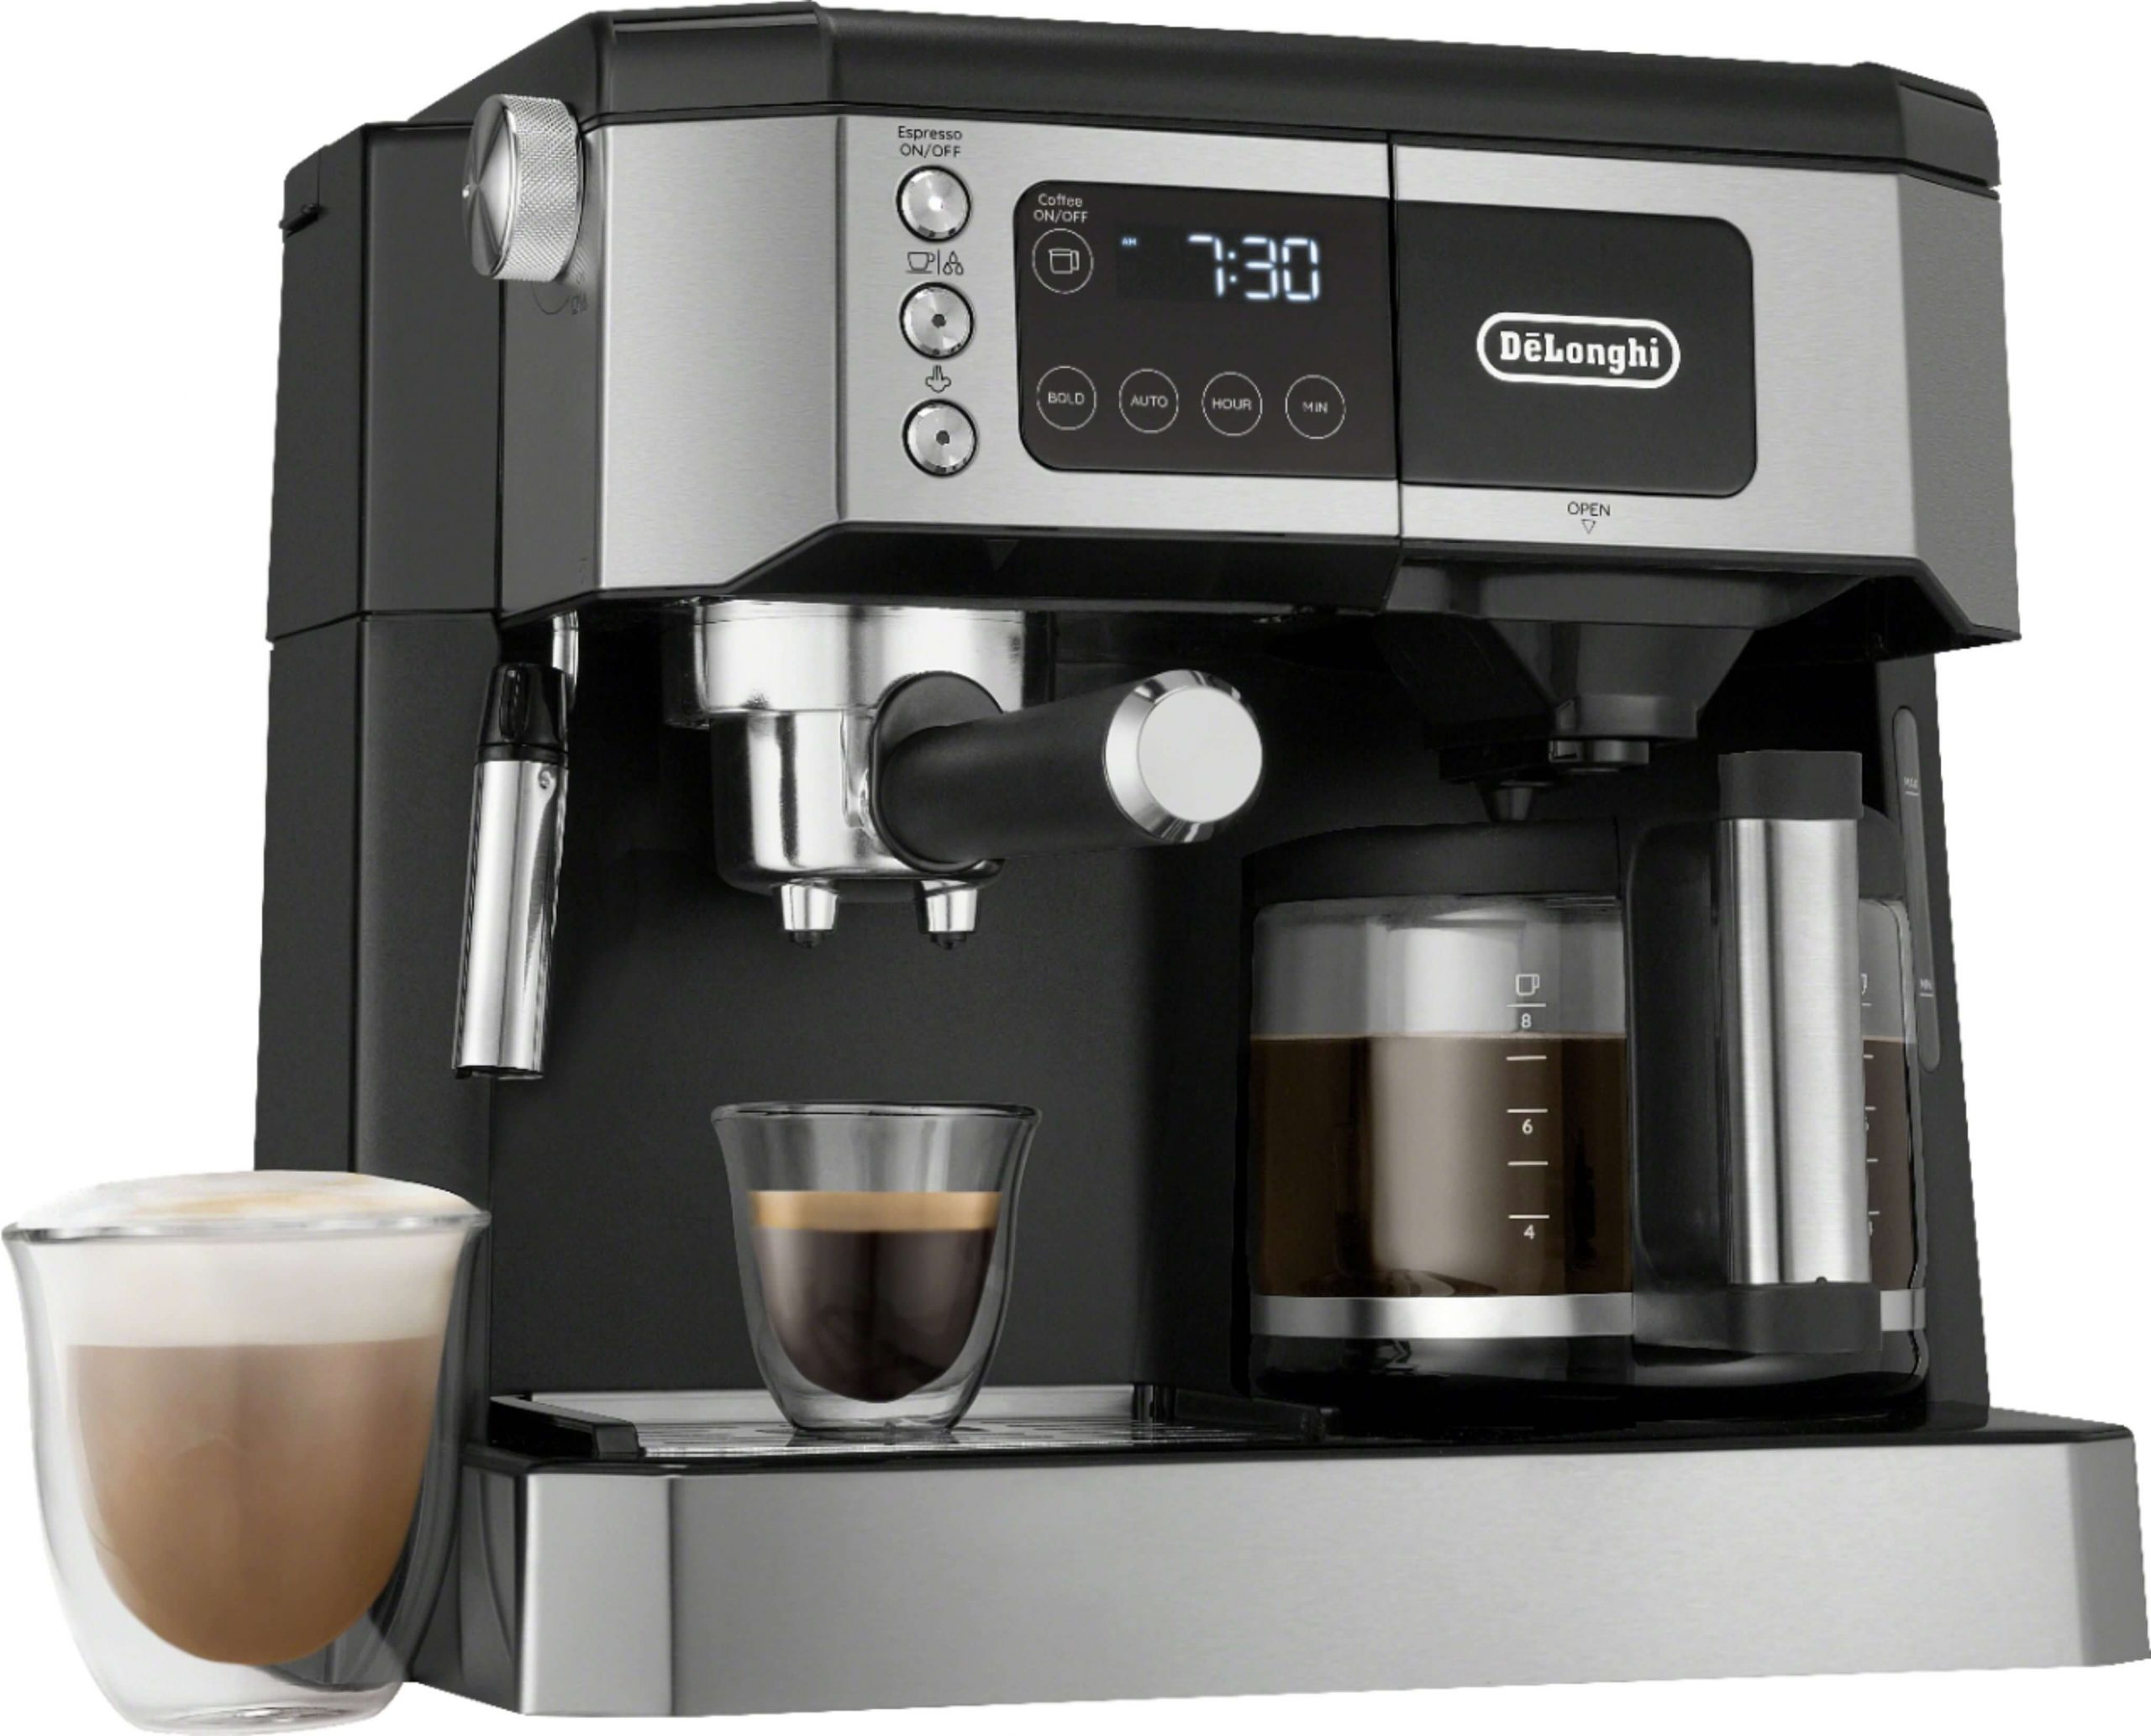 BEST SMALL KITCHEN APPLIANCES YOUR MUSH HAVE. COFFEE MAKER